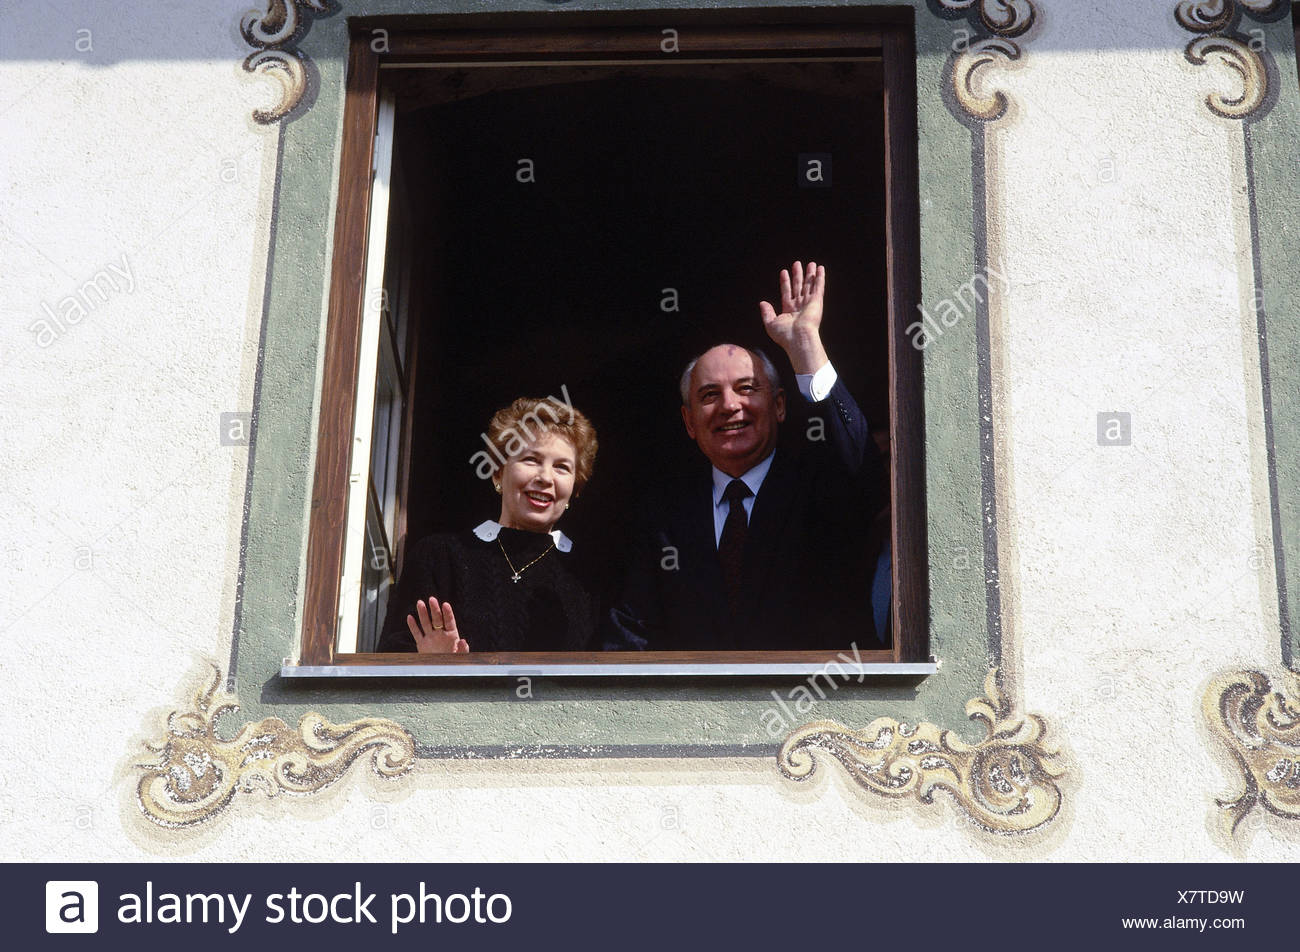 Mikhail Gorbachev, * 2.3.1931, Soviet politician (CPSU), visit to Bavaria, 6. - 8.3.1992, with his wife with his wife Raisa Gorbachova, Additional-Rights-Clearances-NA - Stock Image